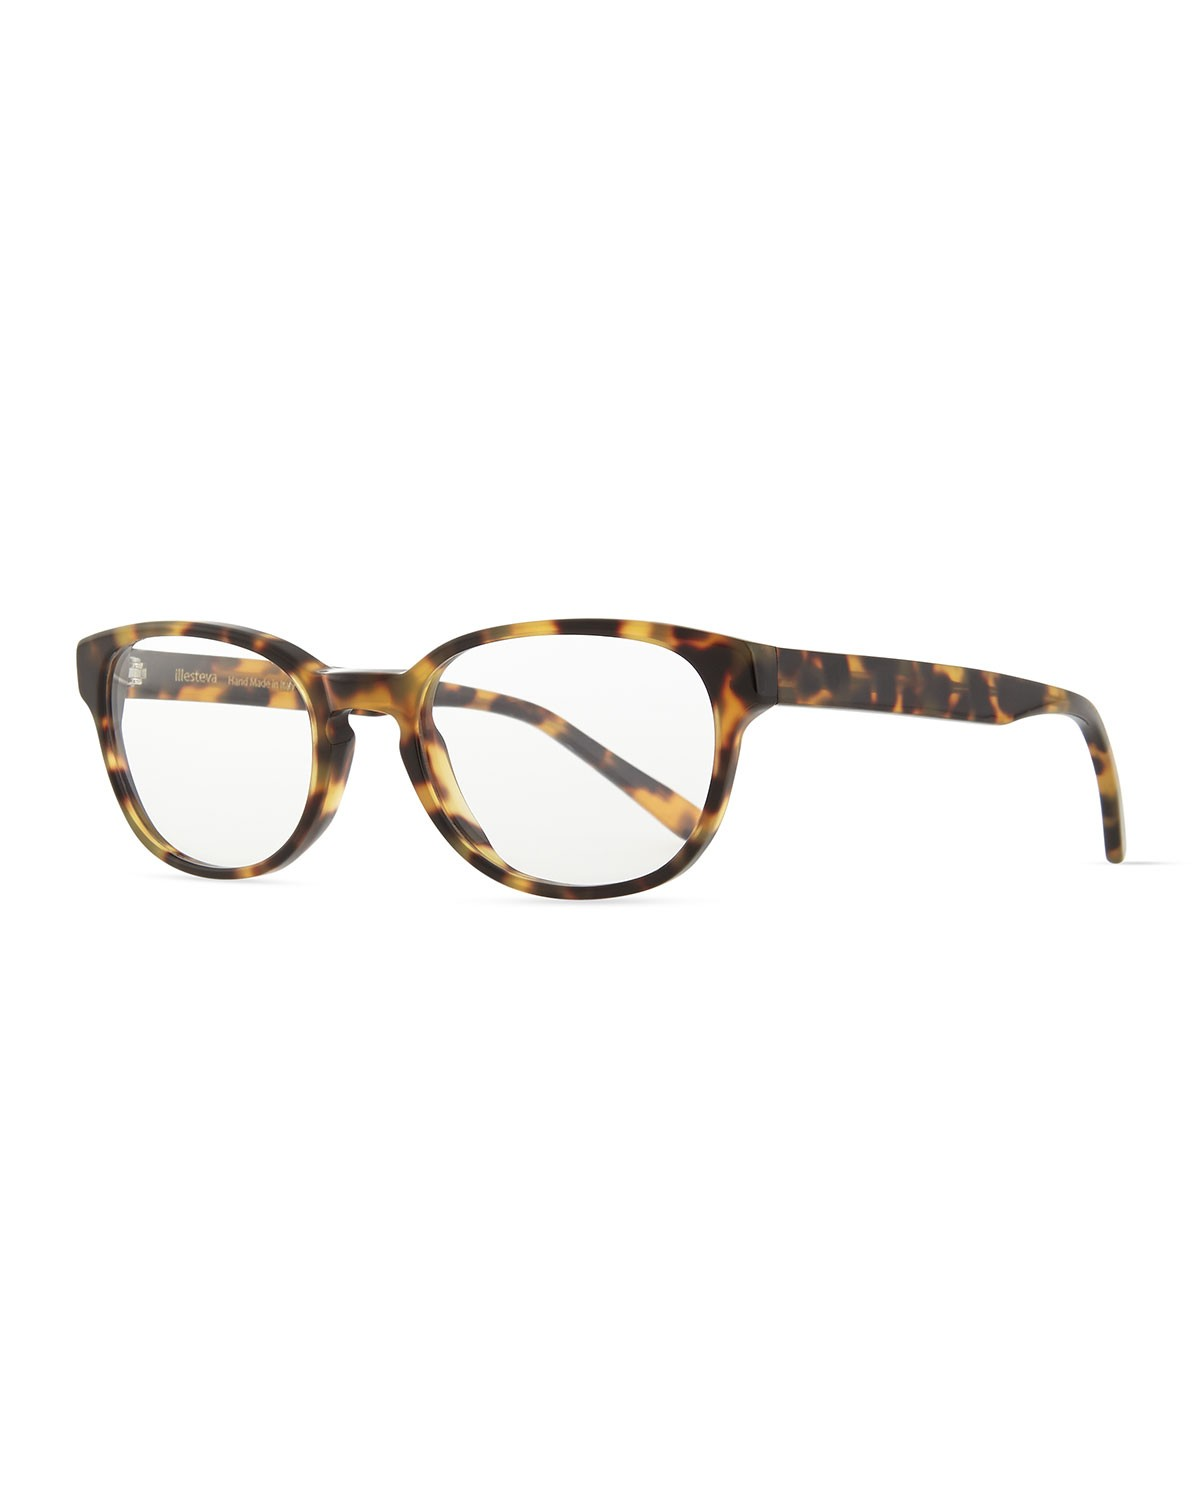 Kent Fashion Glasses, Tortoise (Green) - Illesteva